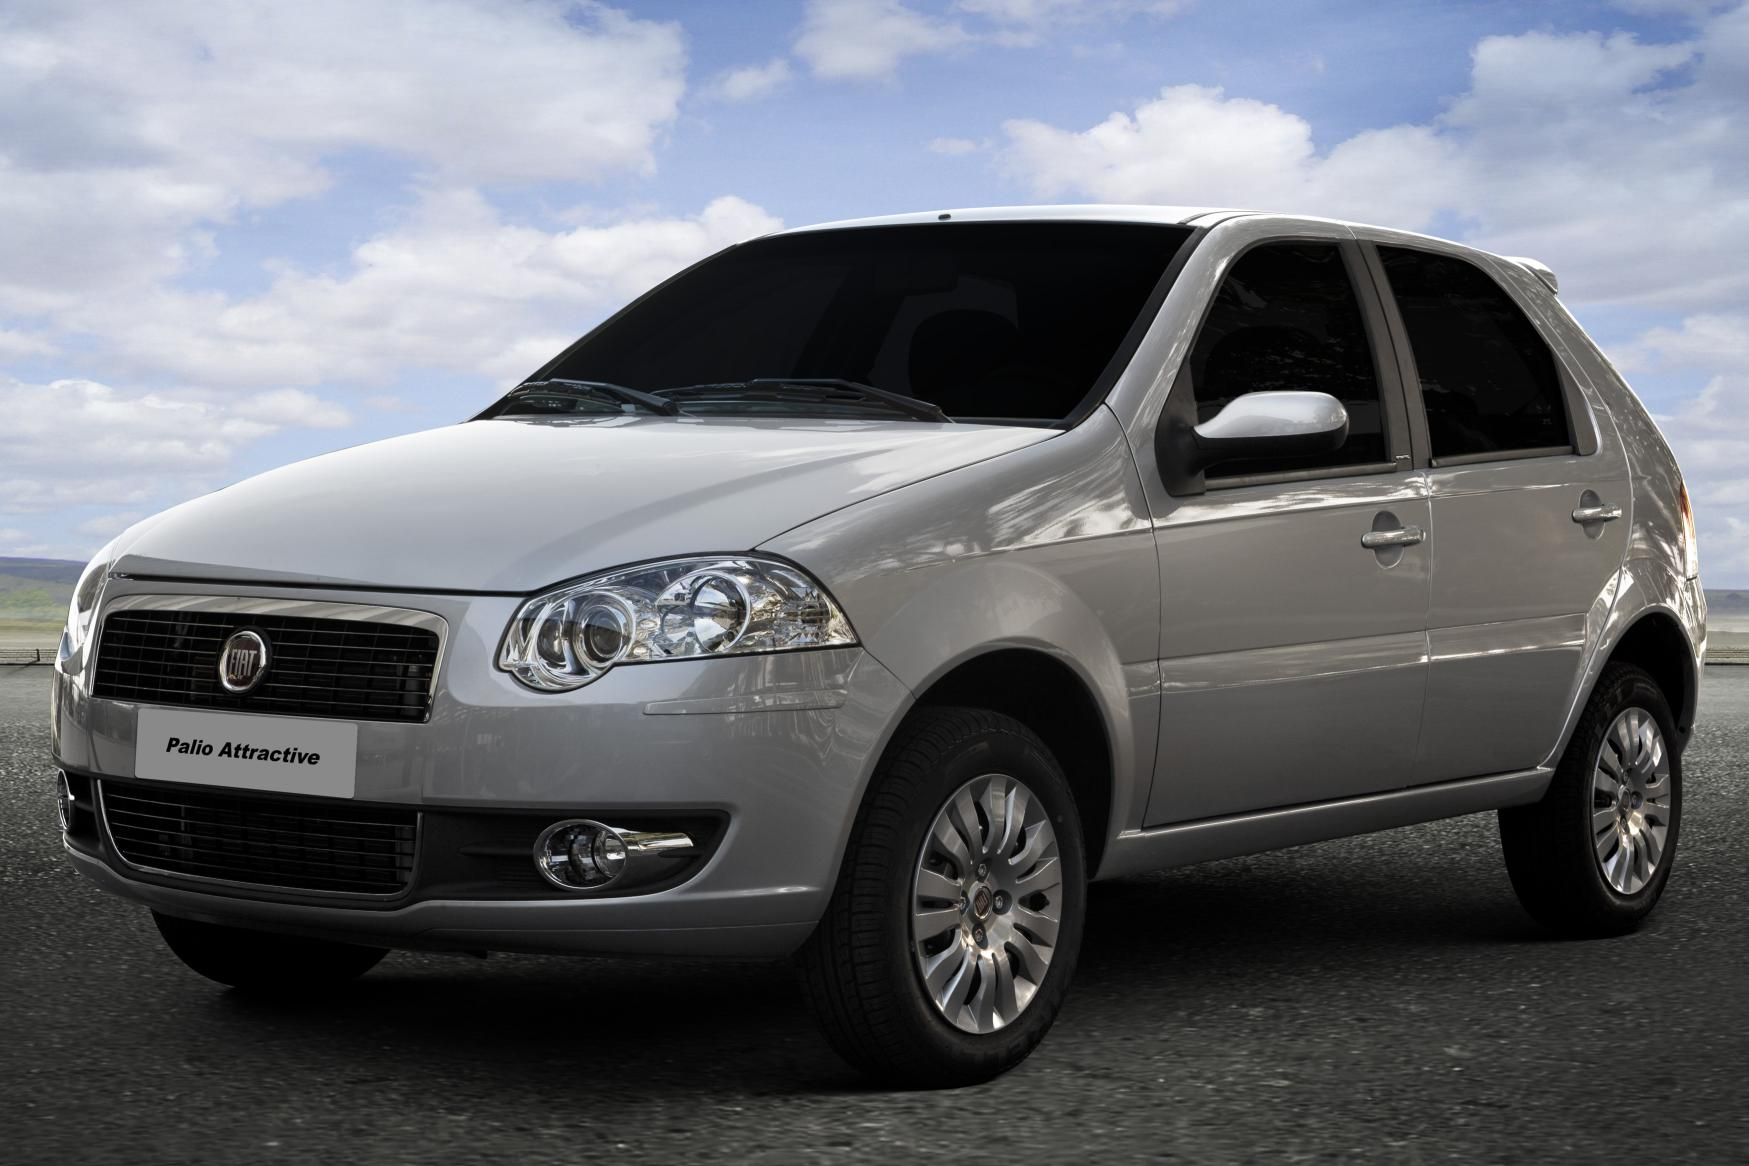 1996 Fiat Palio Elx 1 6 Related Infomation Specifications